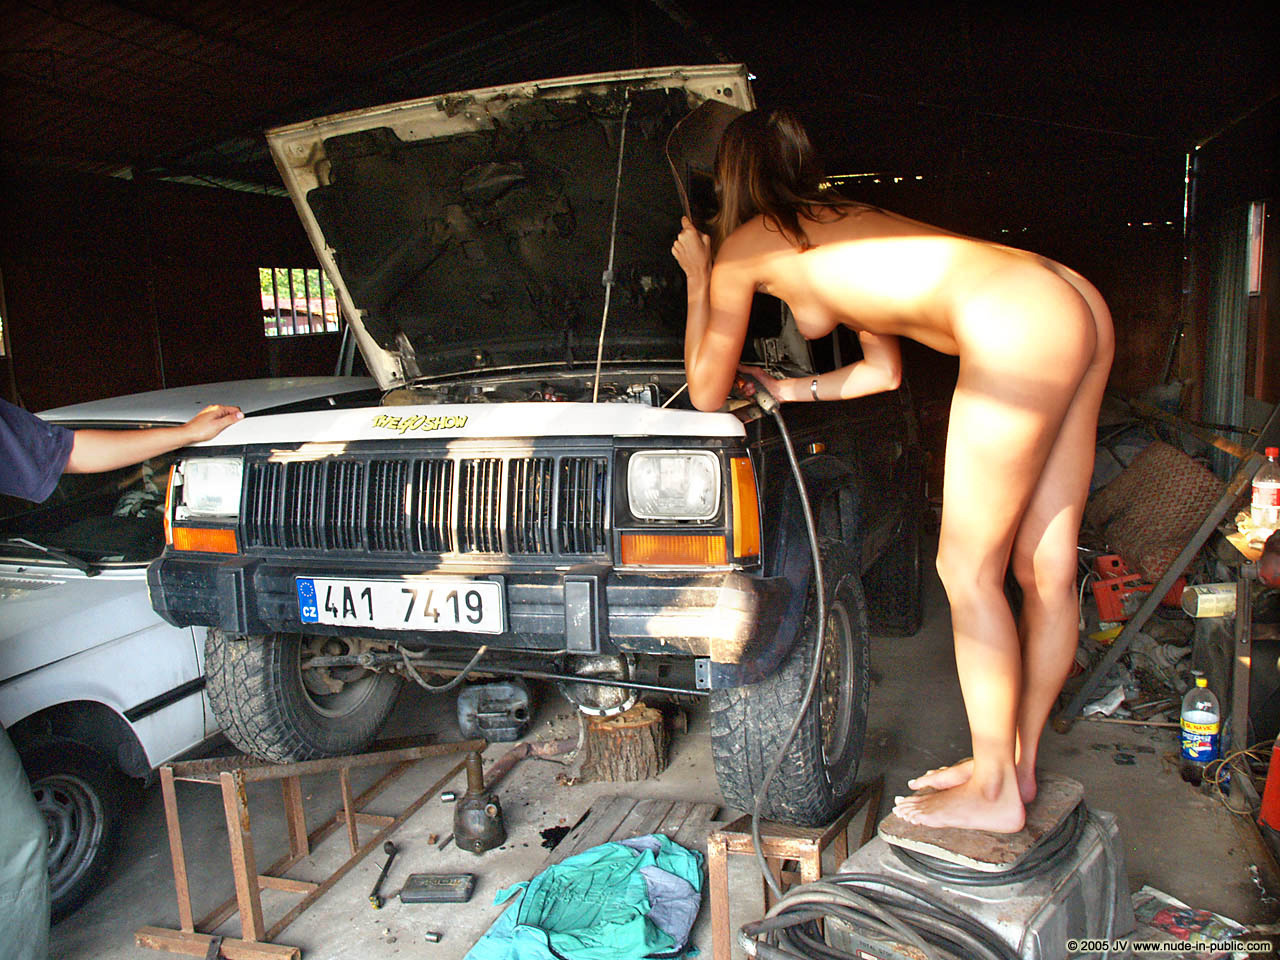 veronika-e-junkyard-cars-mechanic-nude-in-public-20